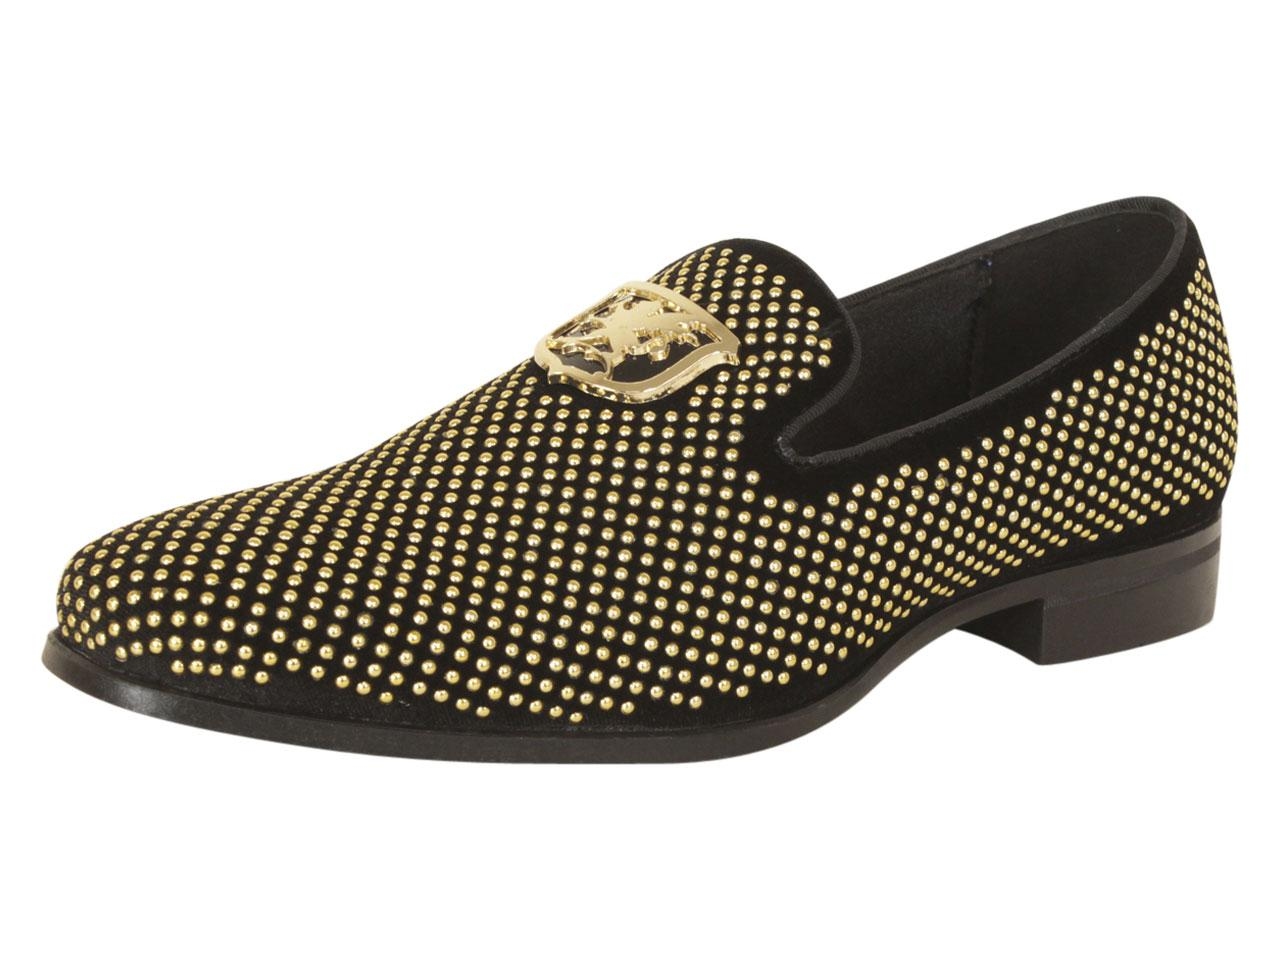 Image of - Black/Gold - 10.5 D(M) US